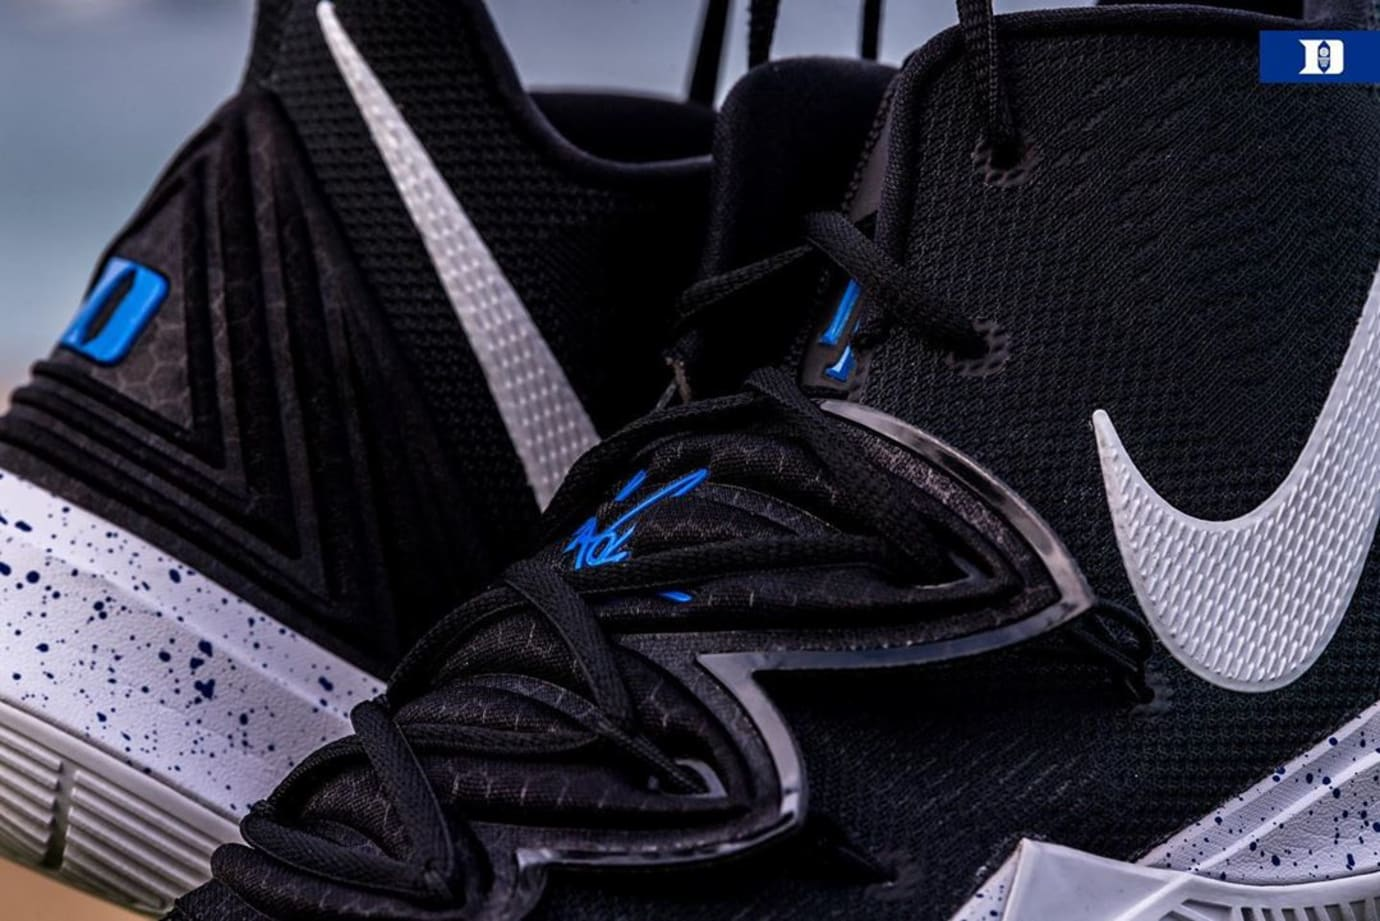 Nike Kyrie 5 'Duke' PE Black (Detail)